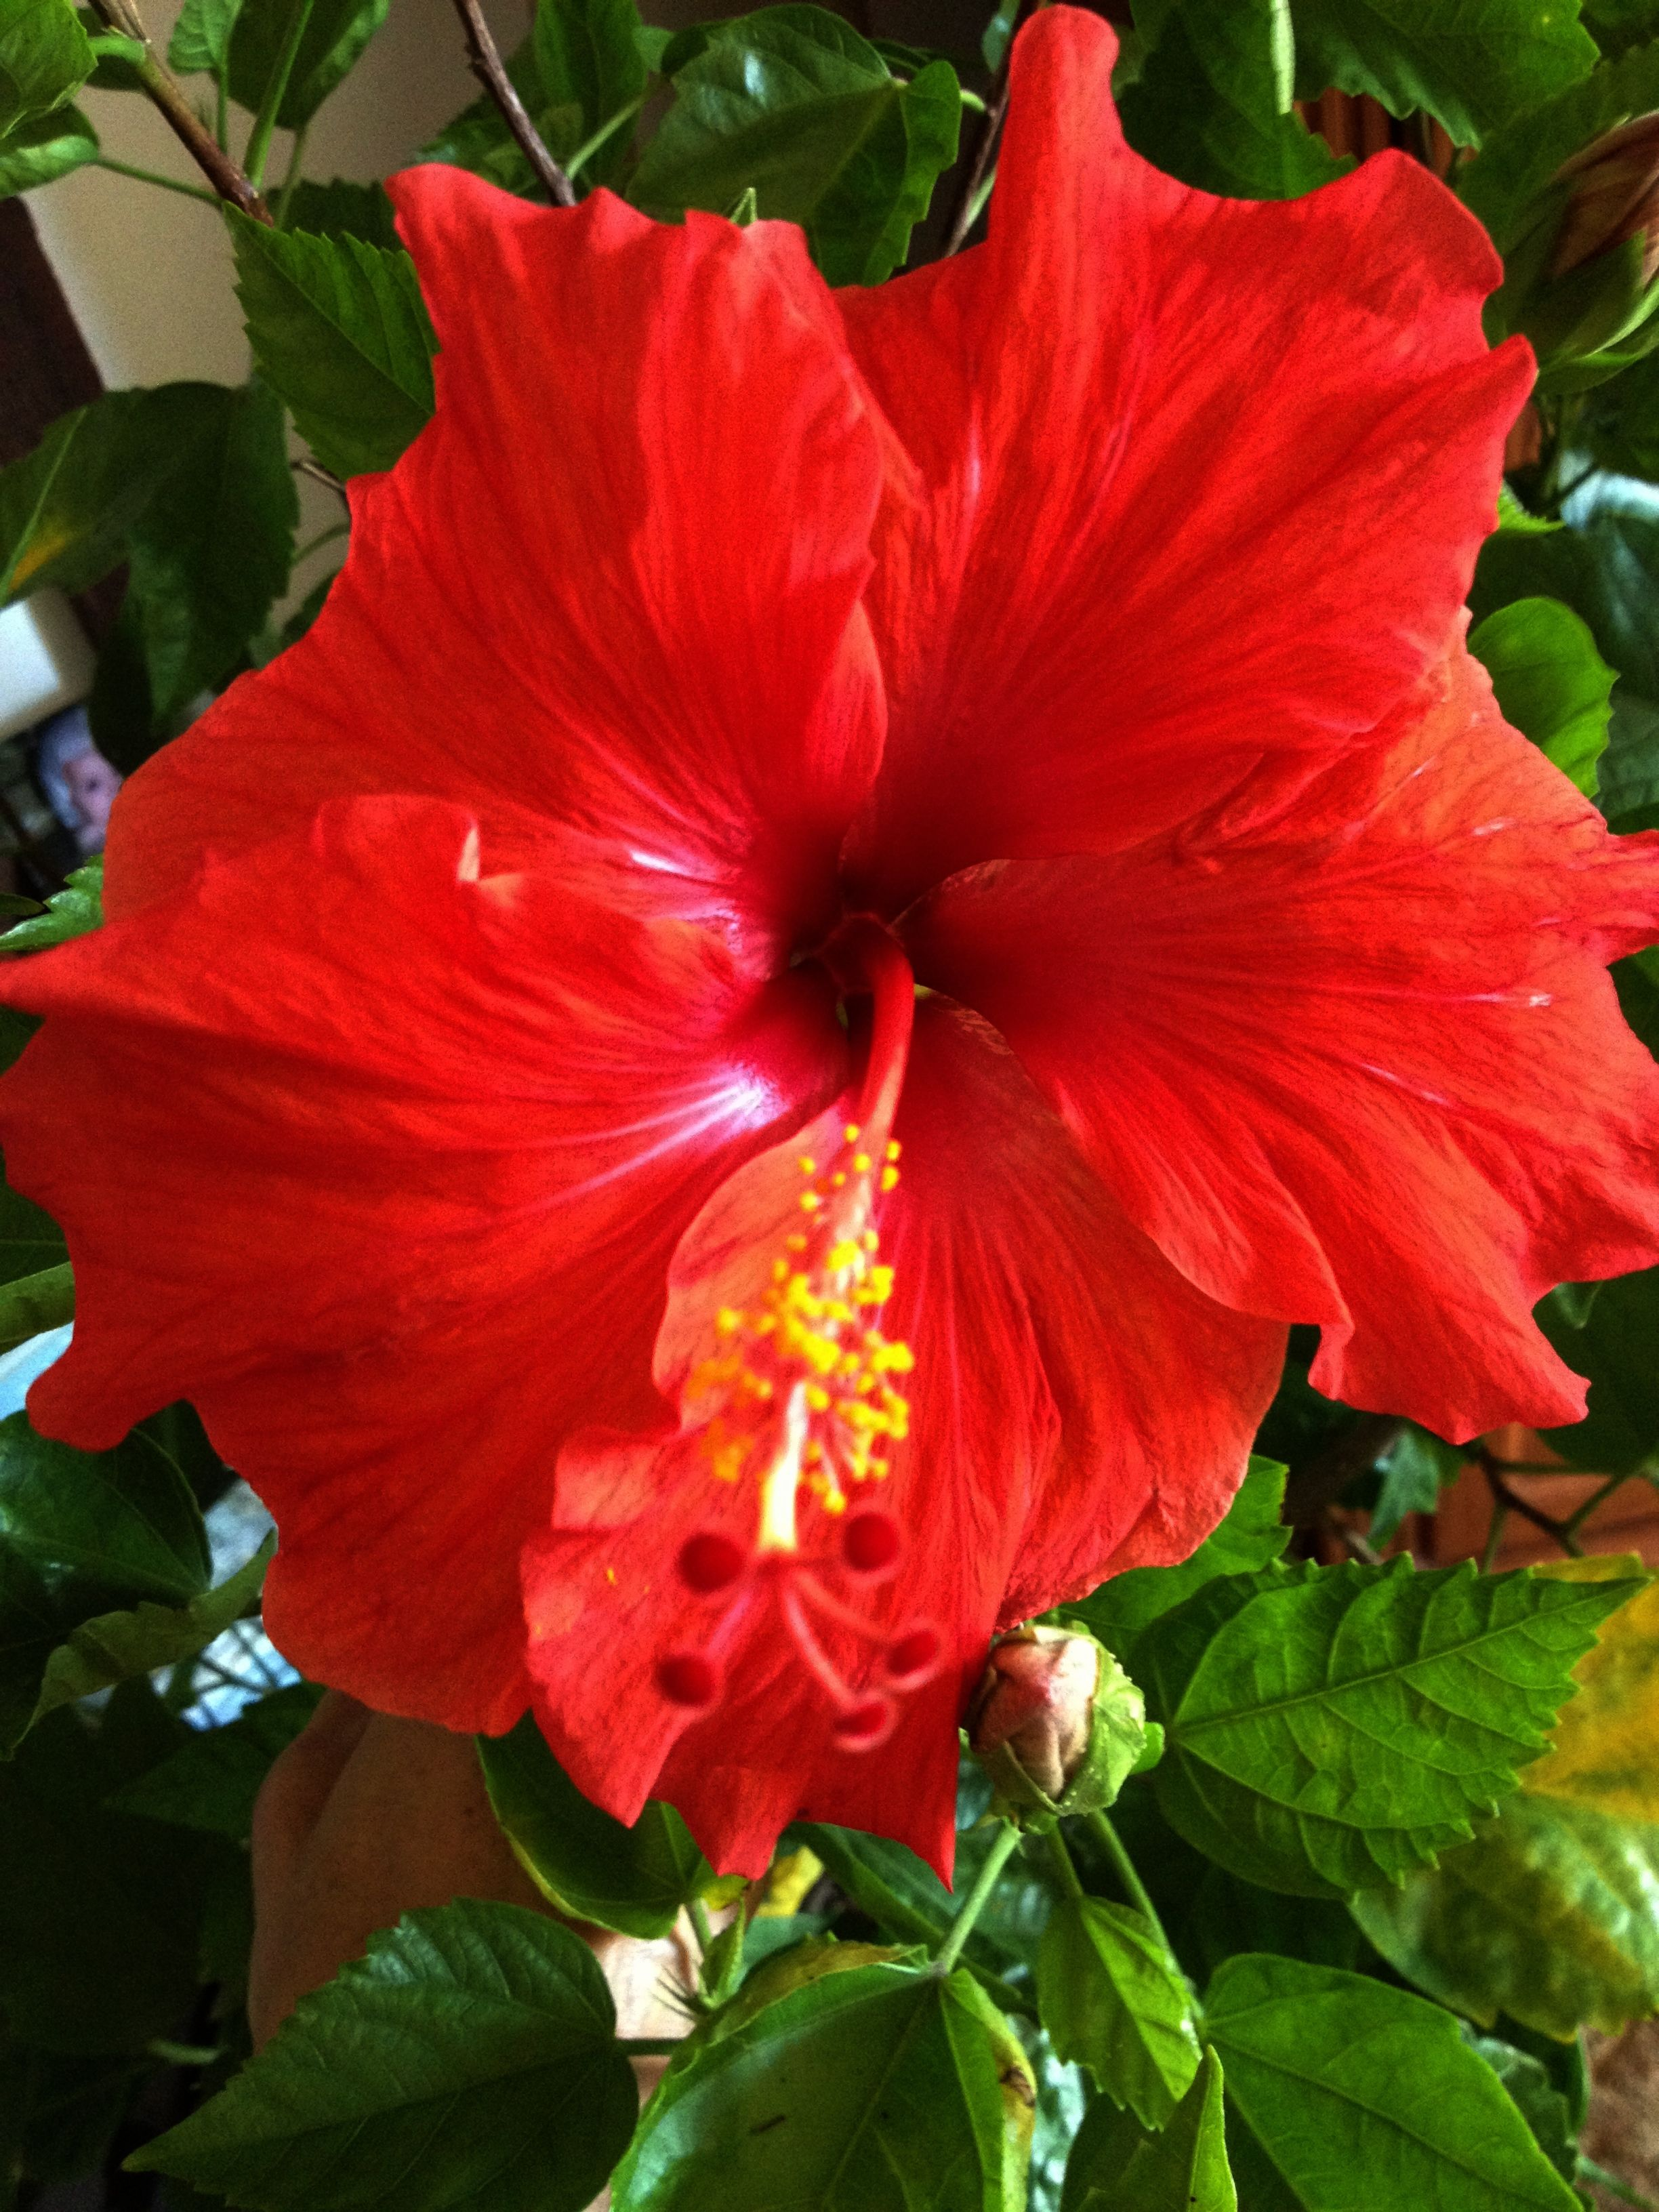 Hibiscus I Have 5 Huge Plants During The Summer Before Fall I